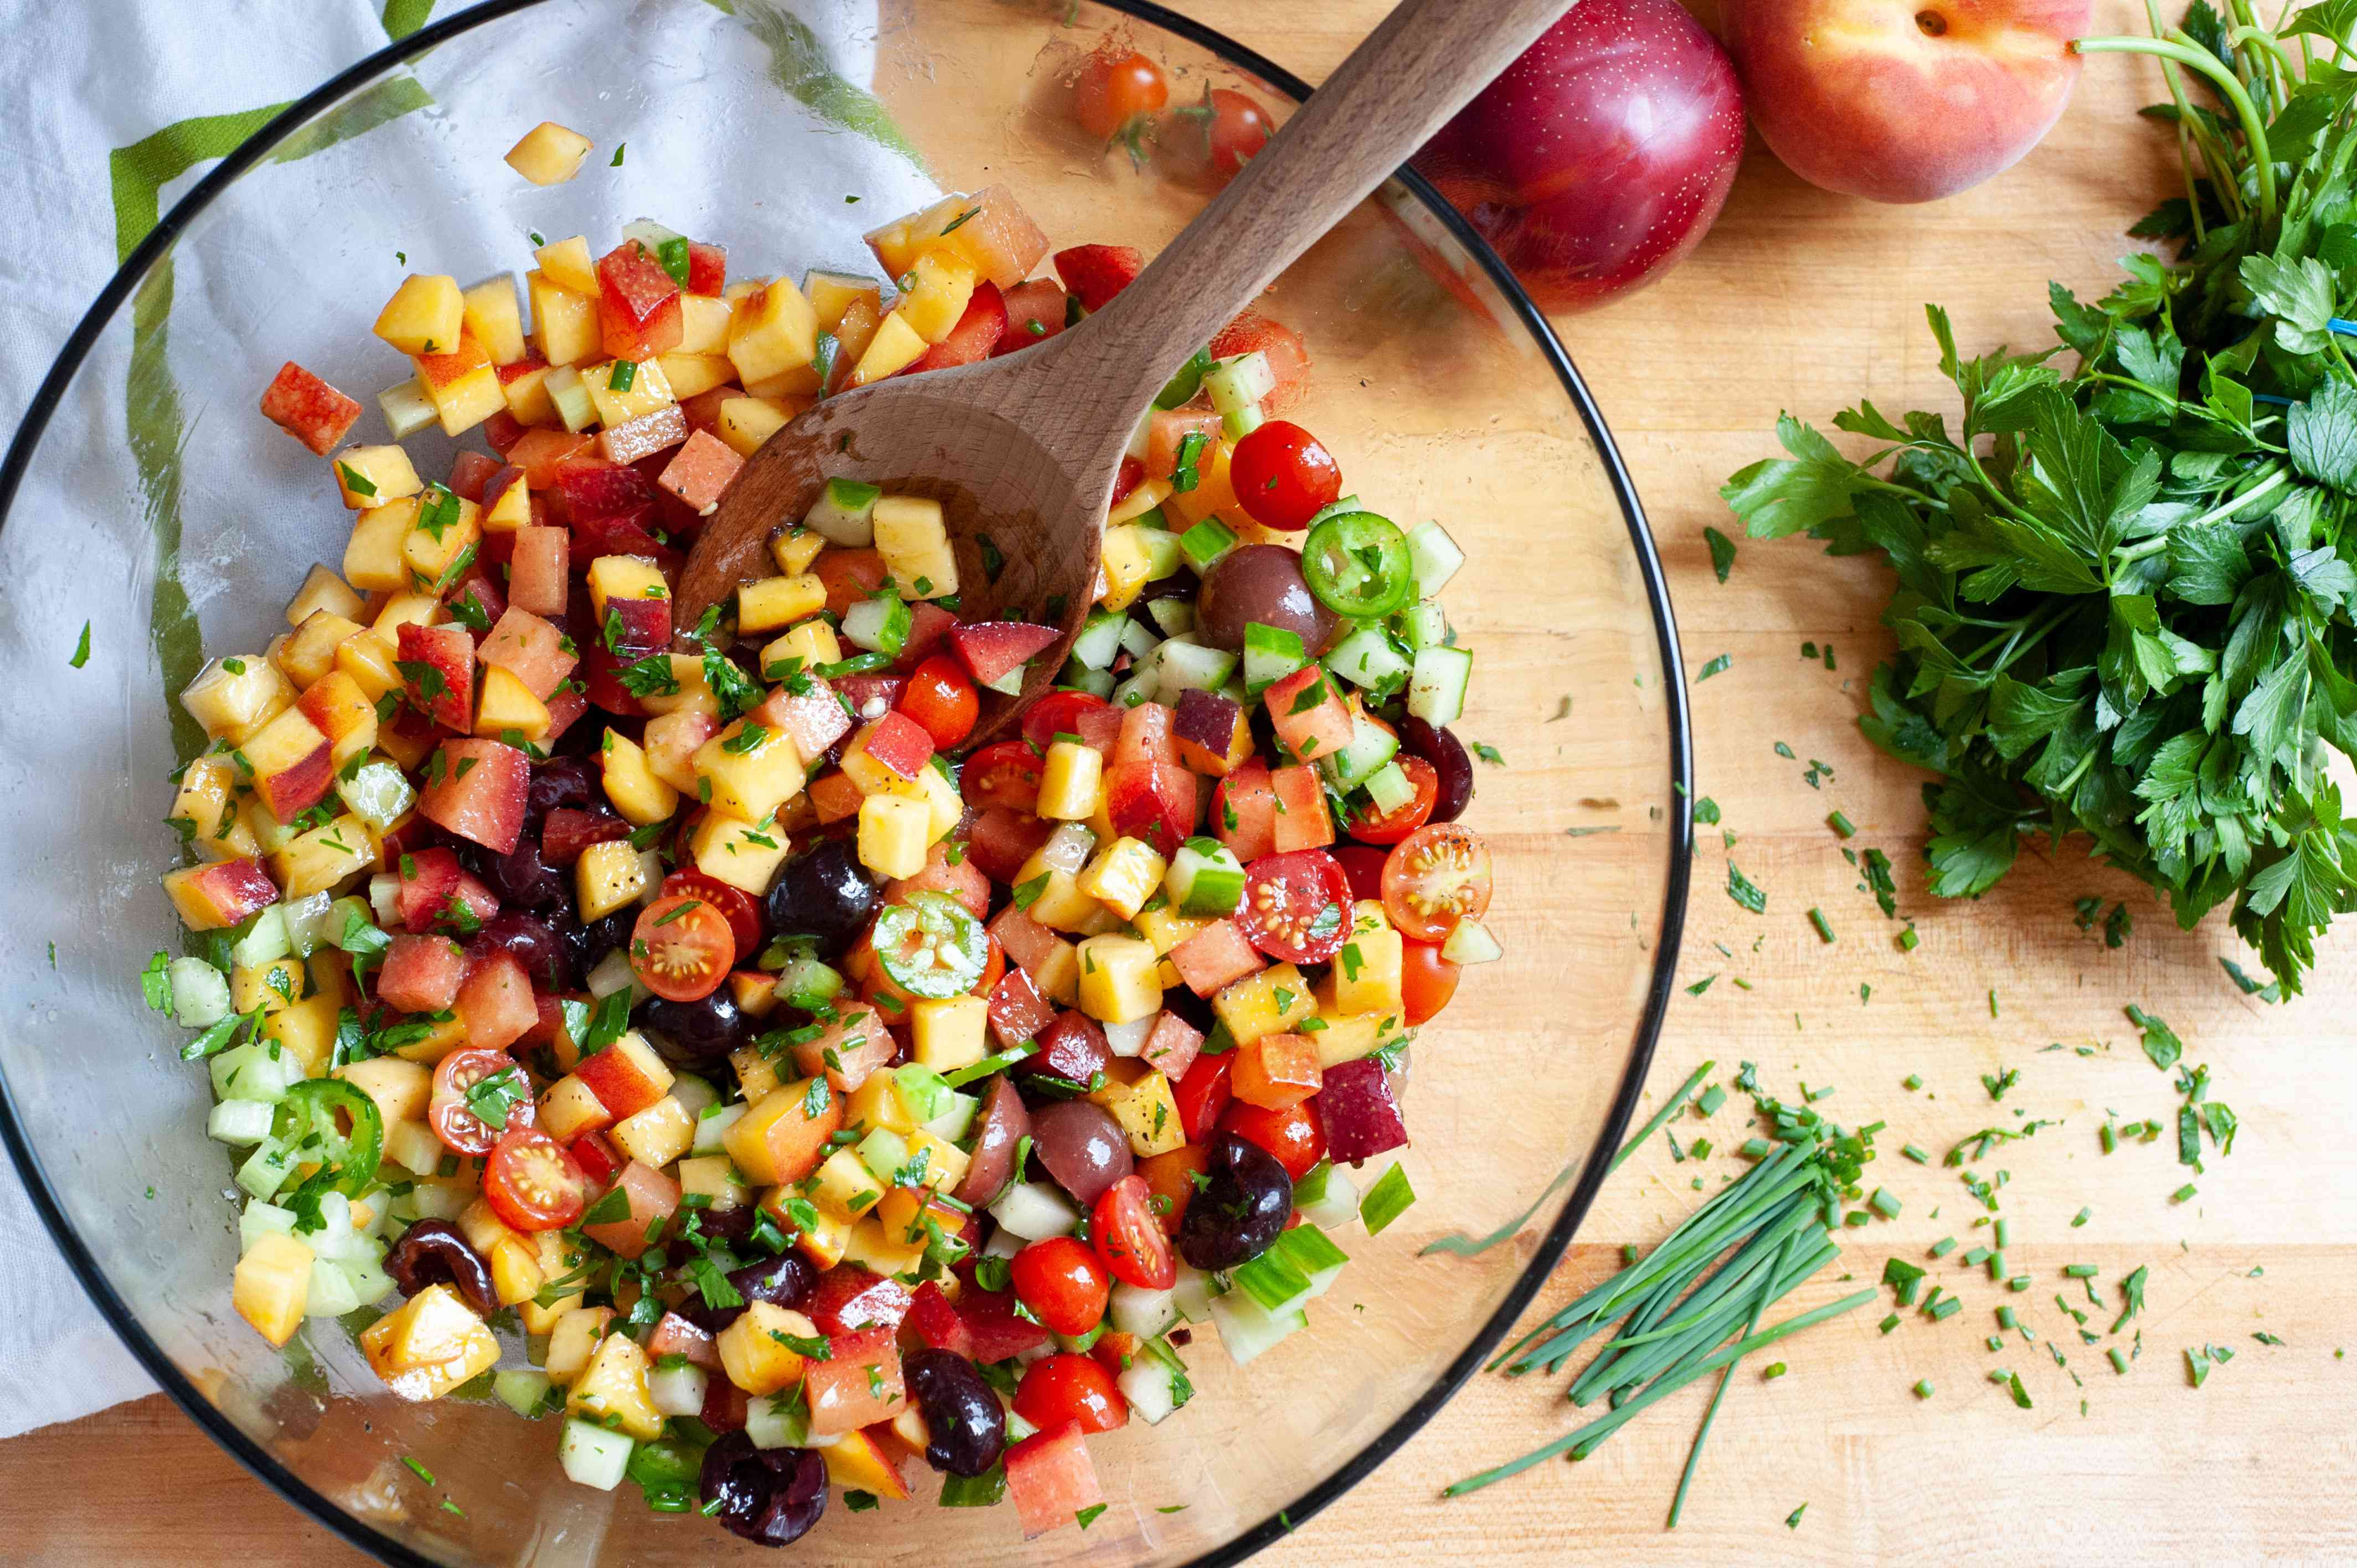 Mixing ingredients in a bowl to make a stone fruit and vegetable salad.